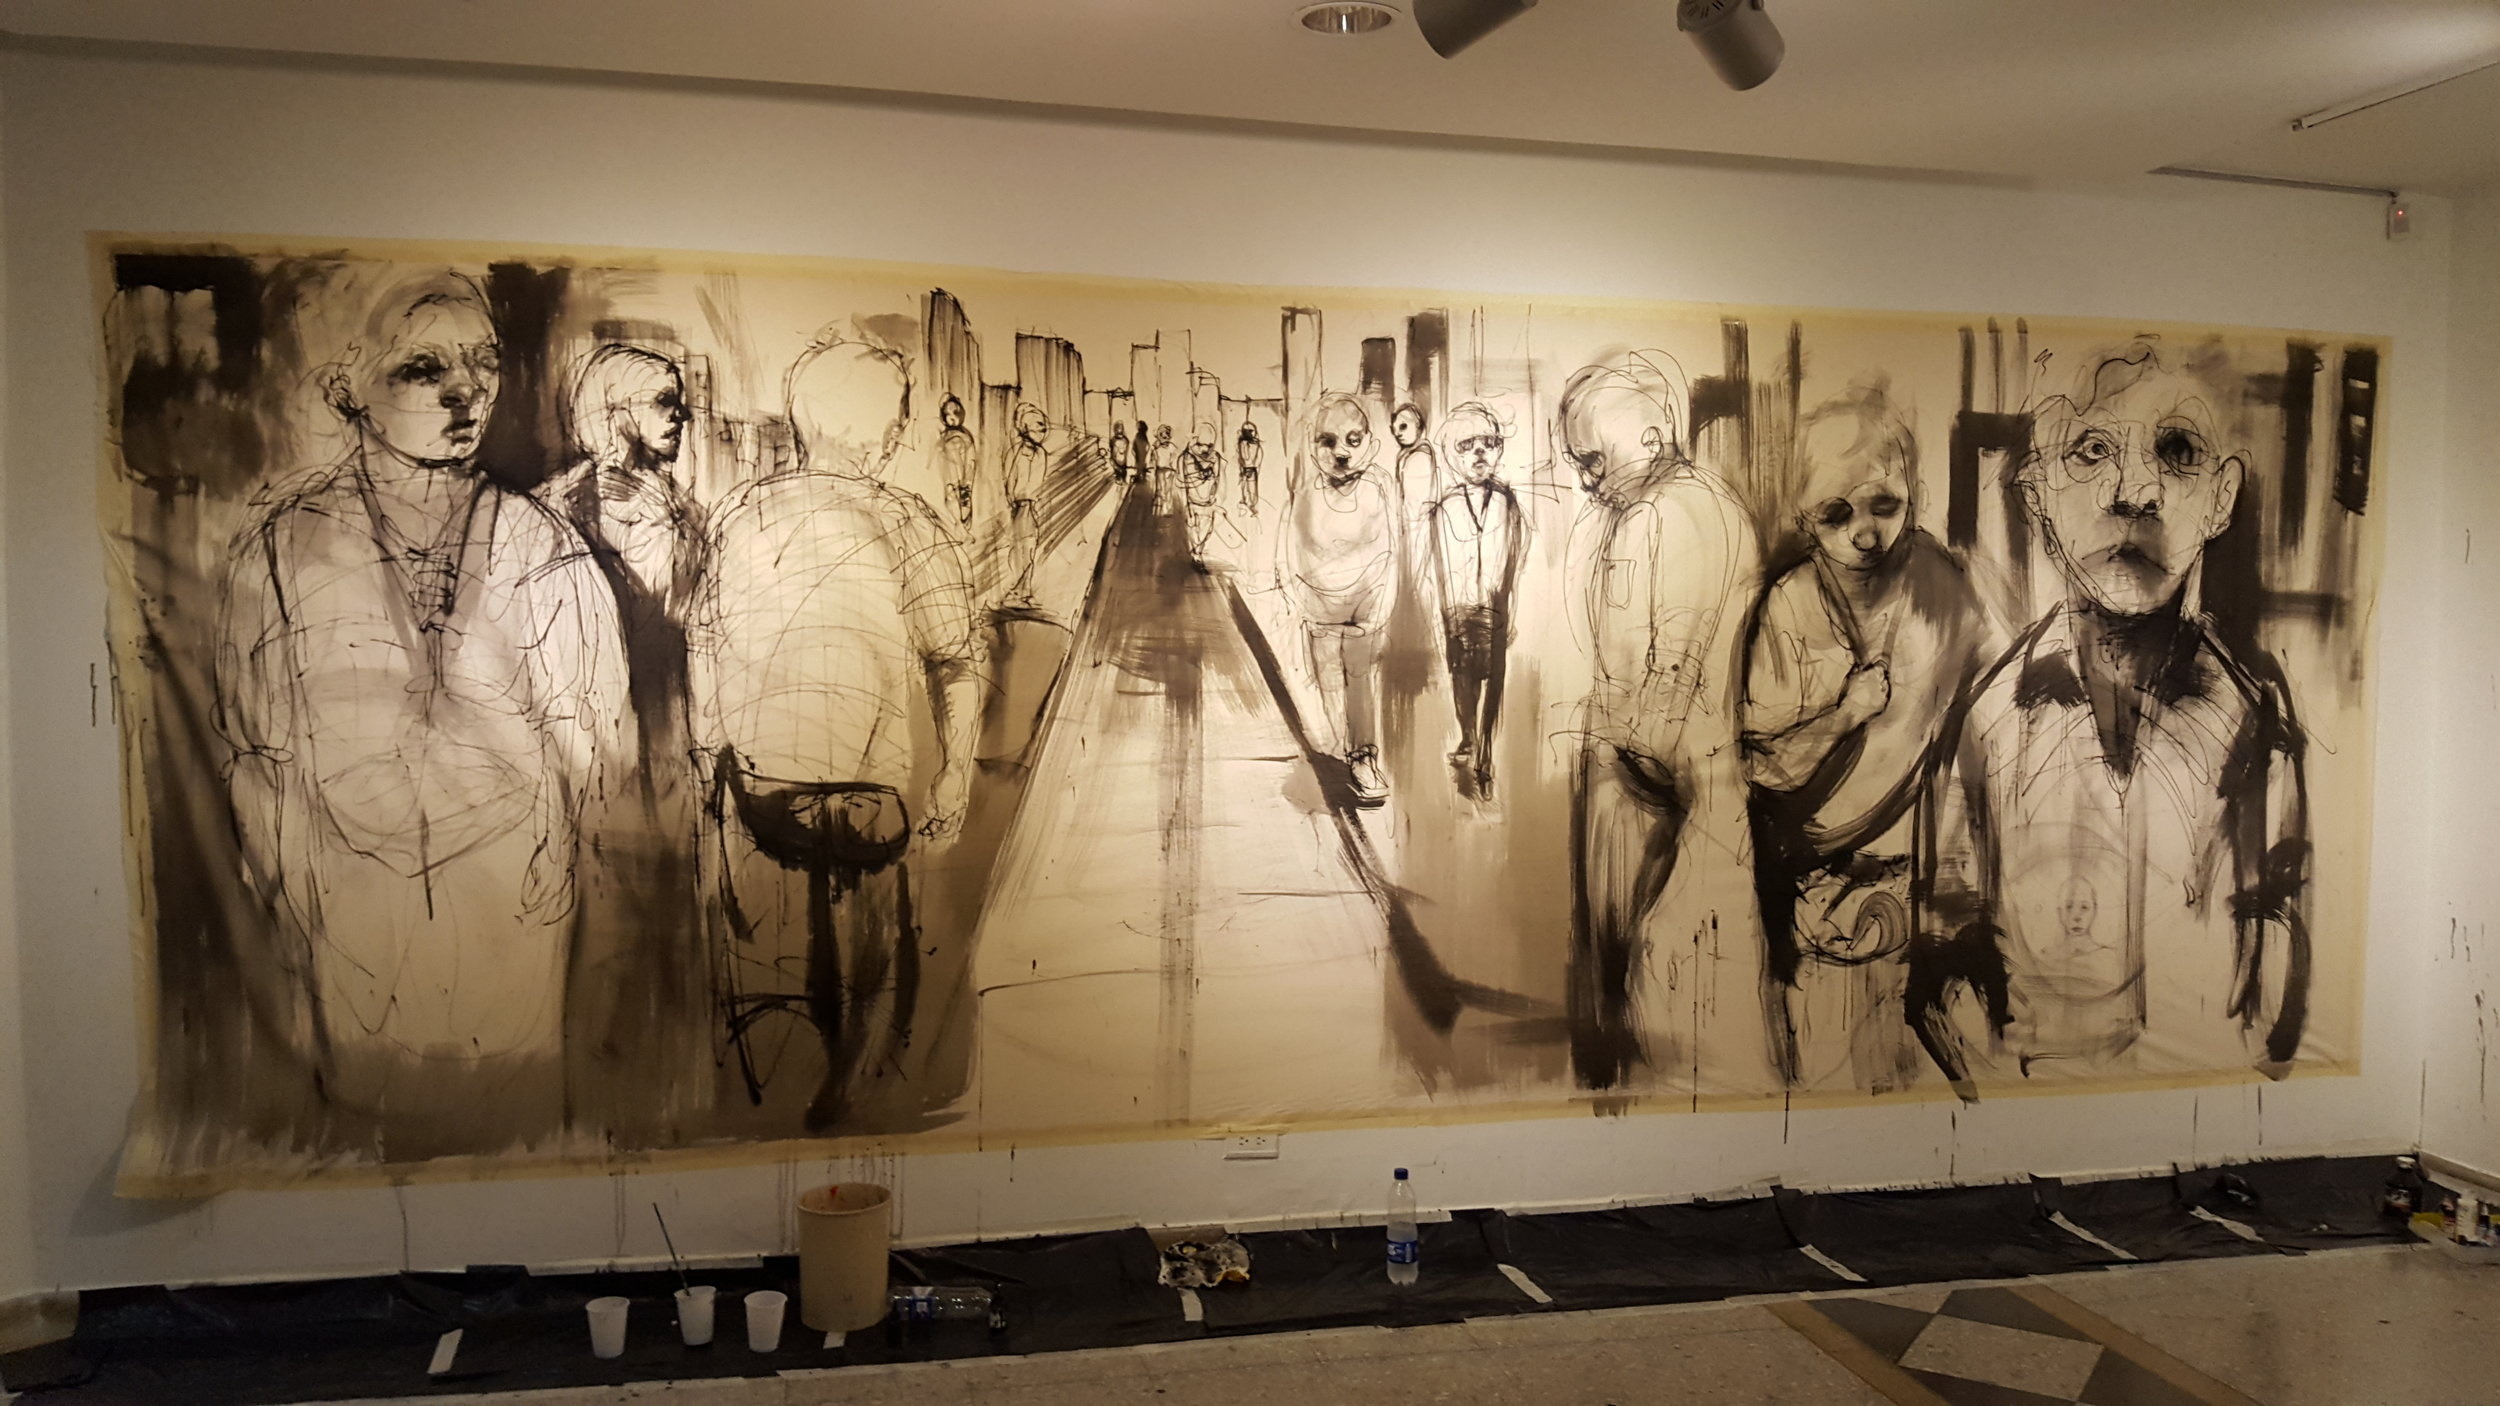 Large scale art work painted live at Gallery Carlos Drew in Pereira, Colombia